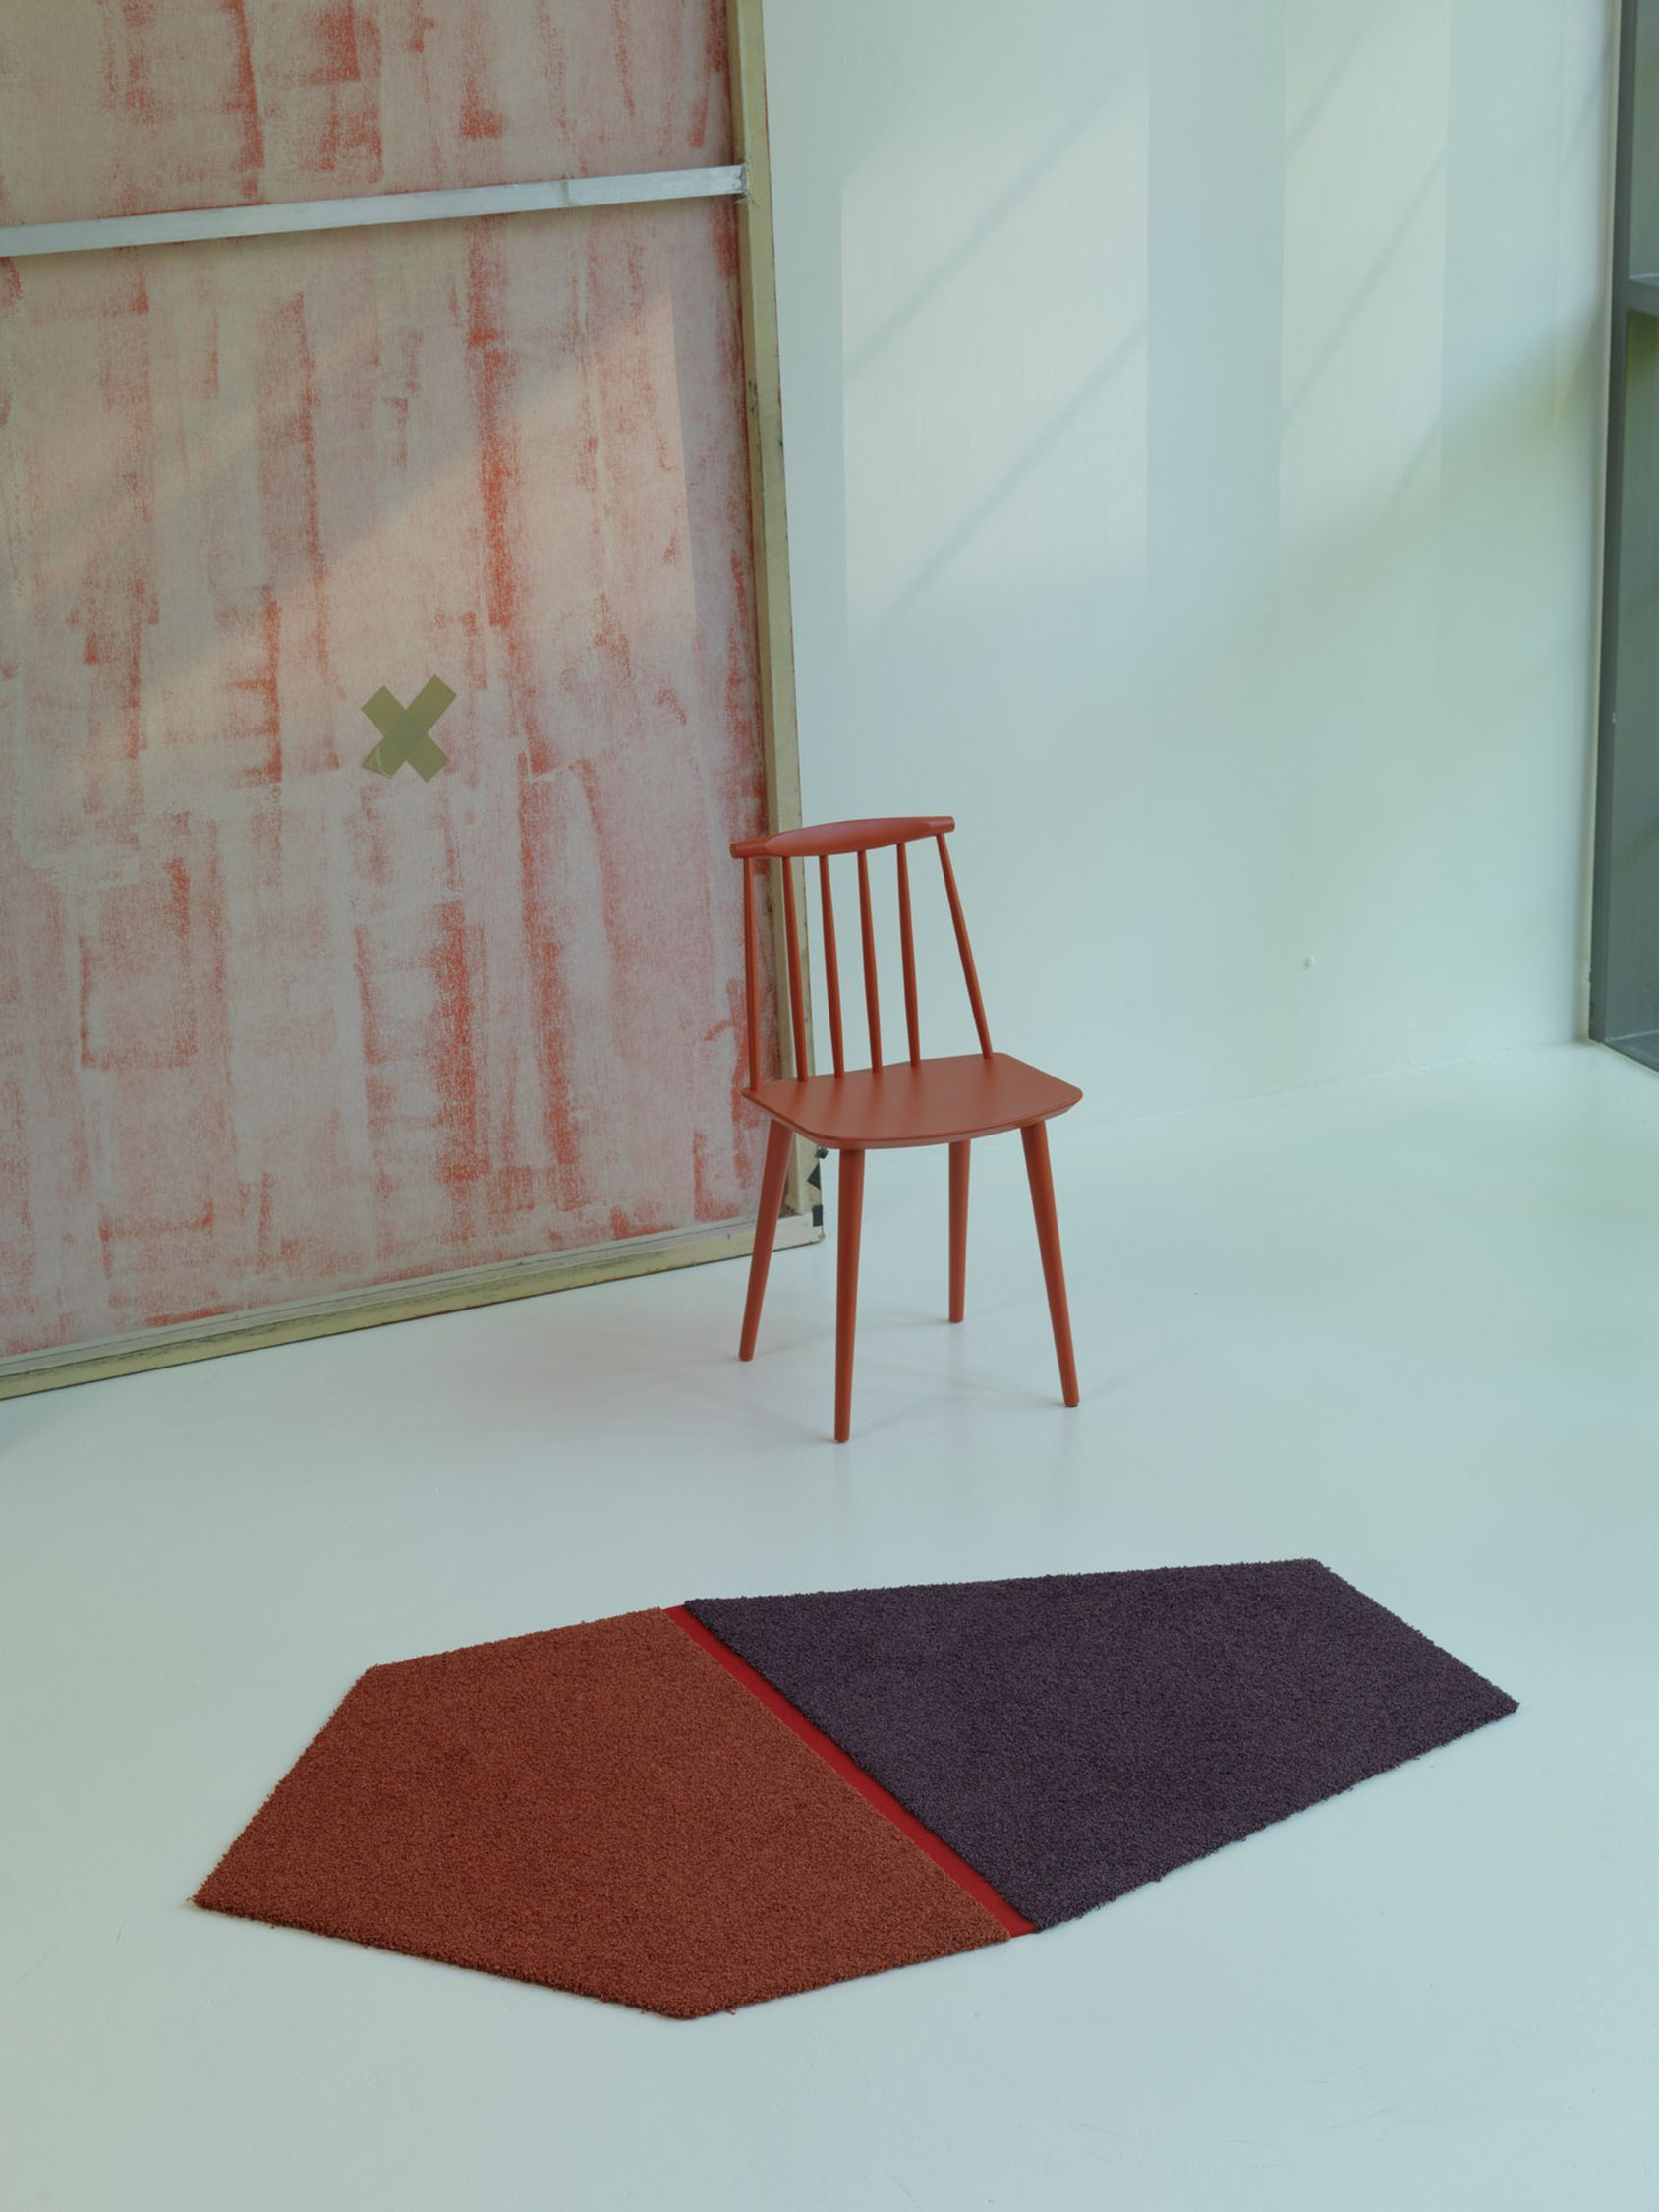 Floor Coverings Fibers And Yarns Vorwerk Teppichwerke - Nordpfeil Teppich